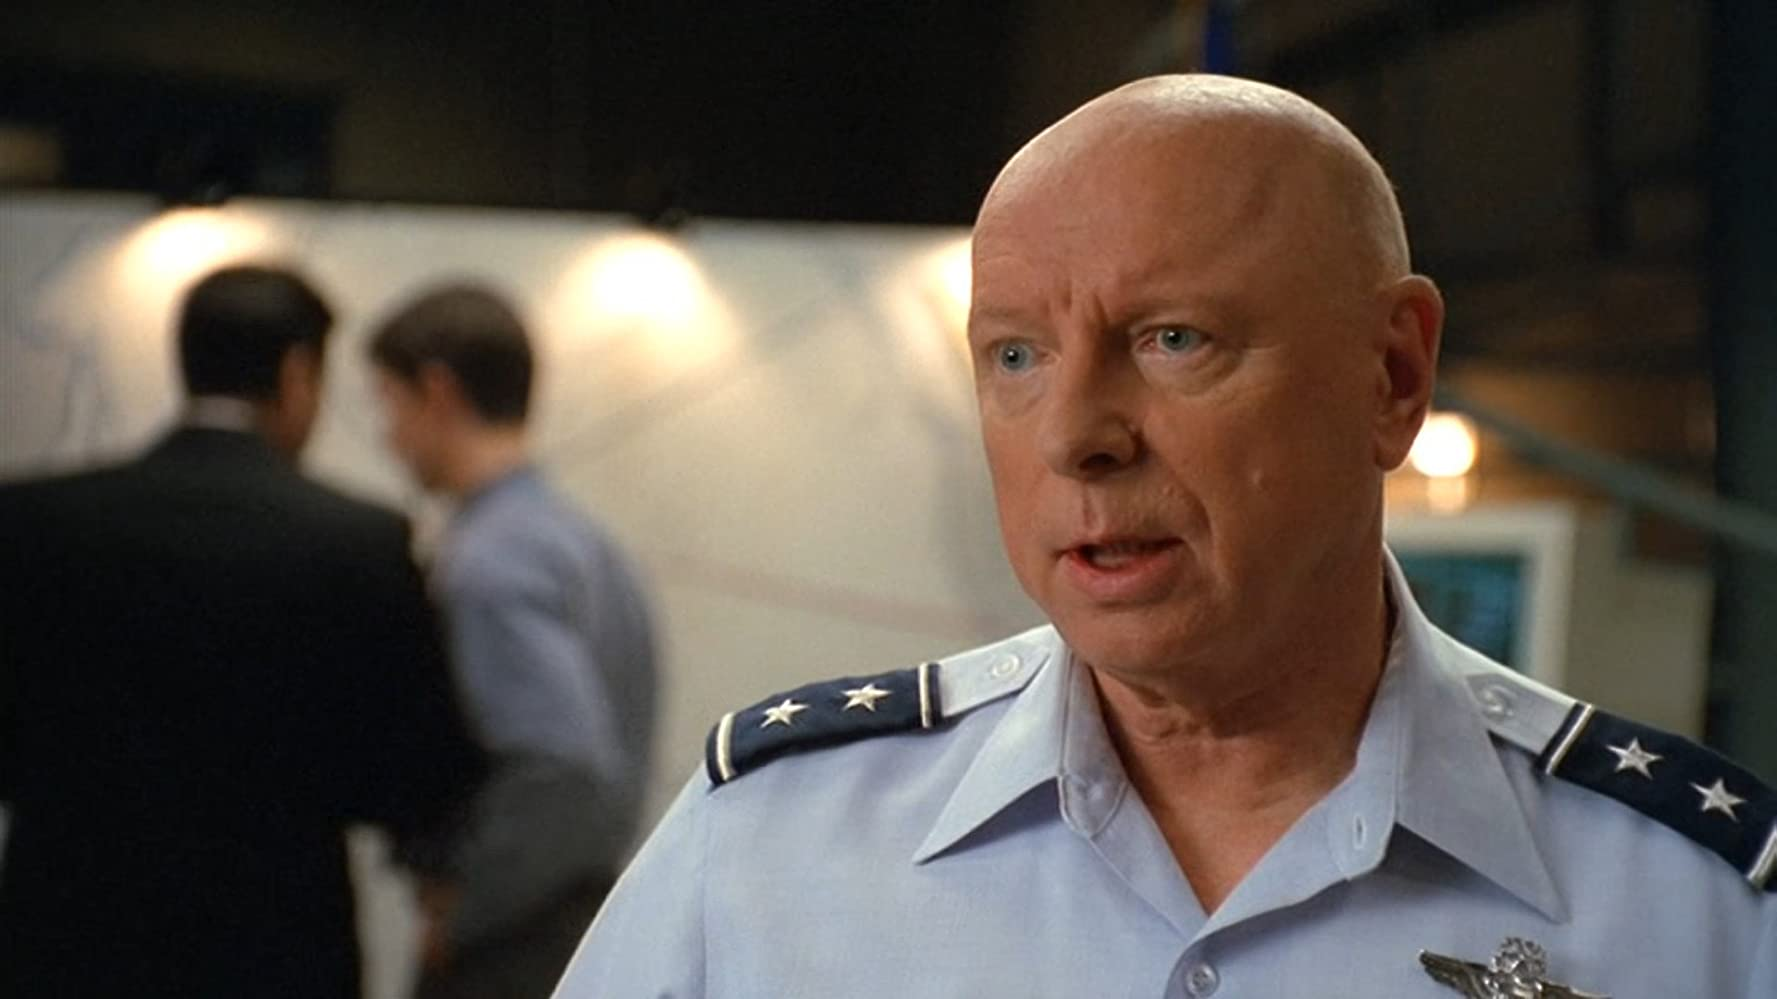 Don S. Davis in Stargate SG-1 (1997)